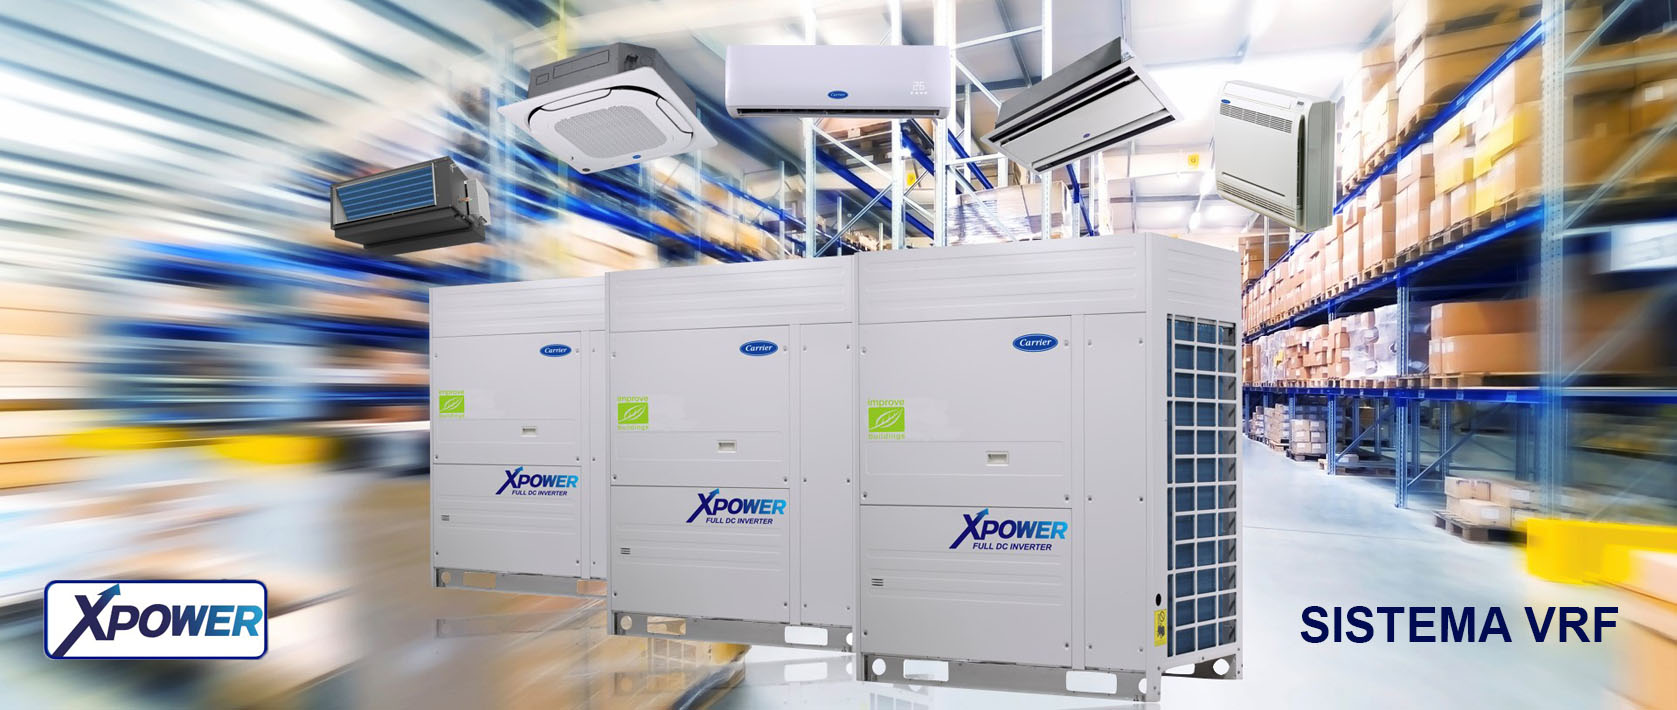 Carrier XPOWER